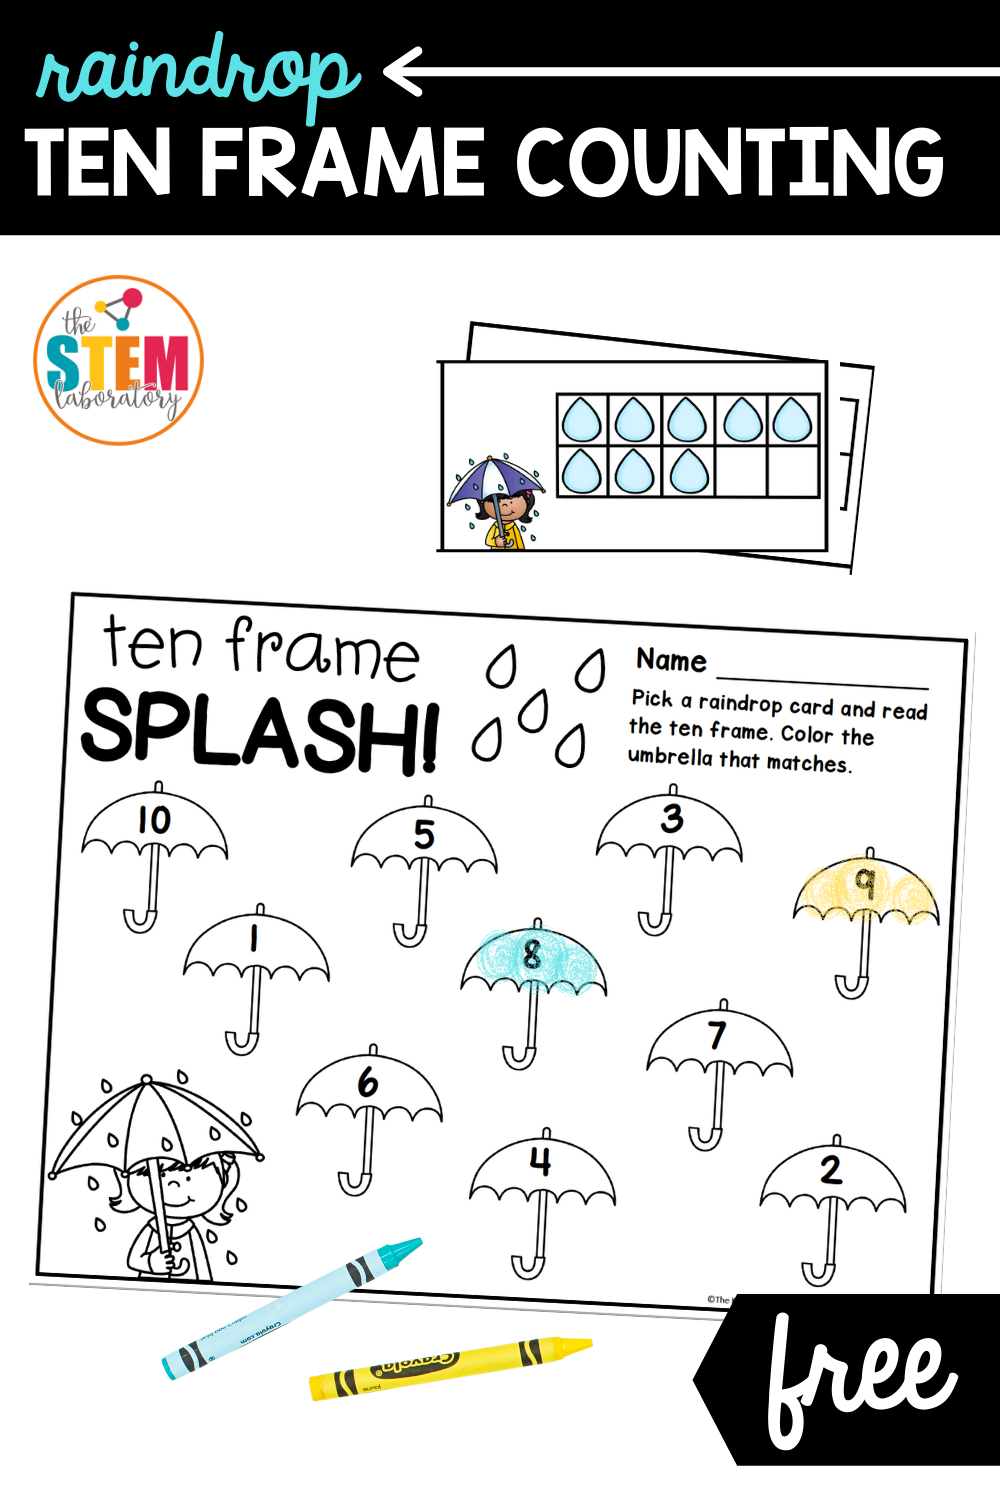 Raindrop Ten Frame Counting Activity